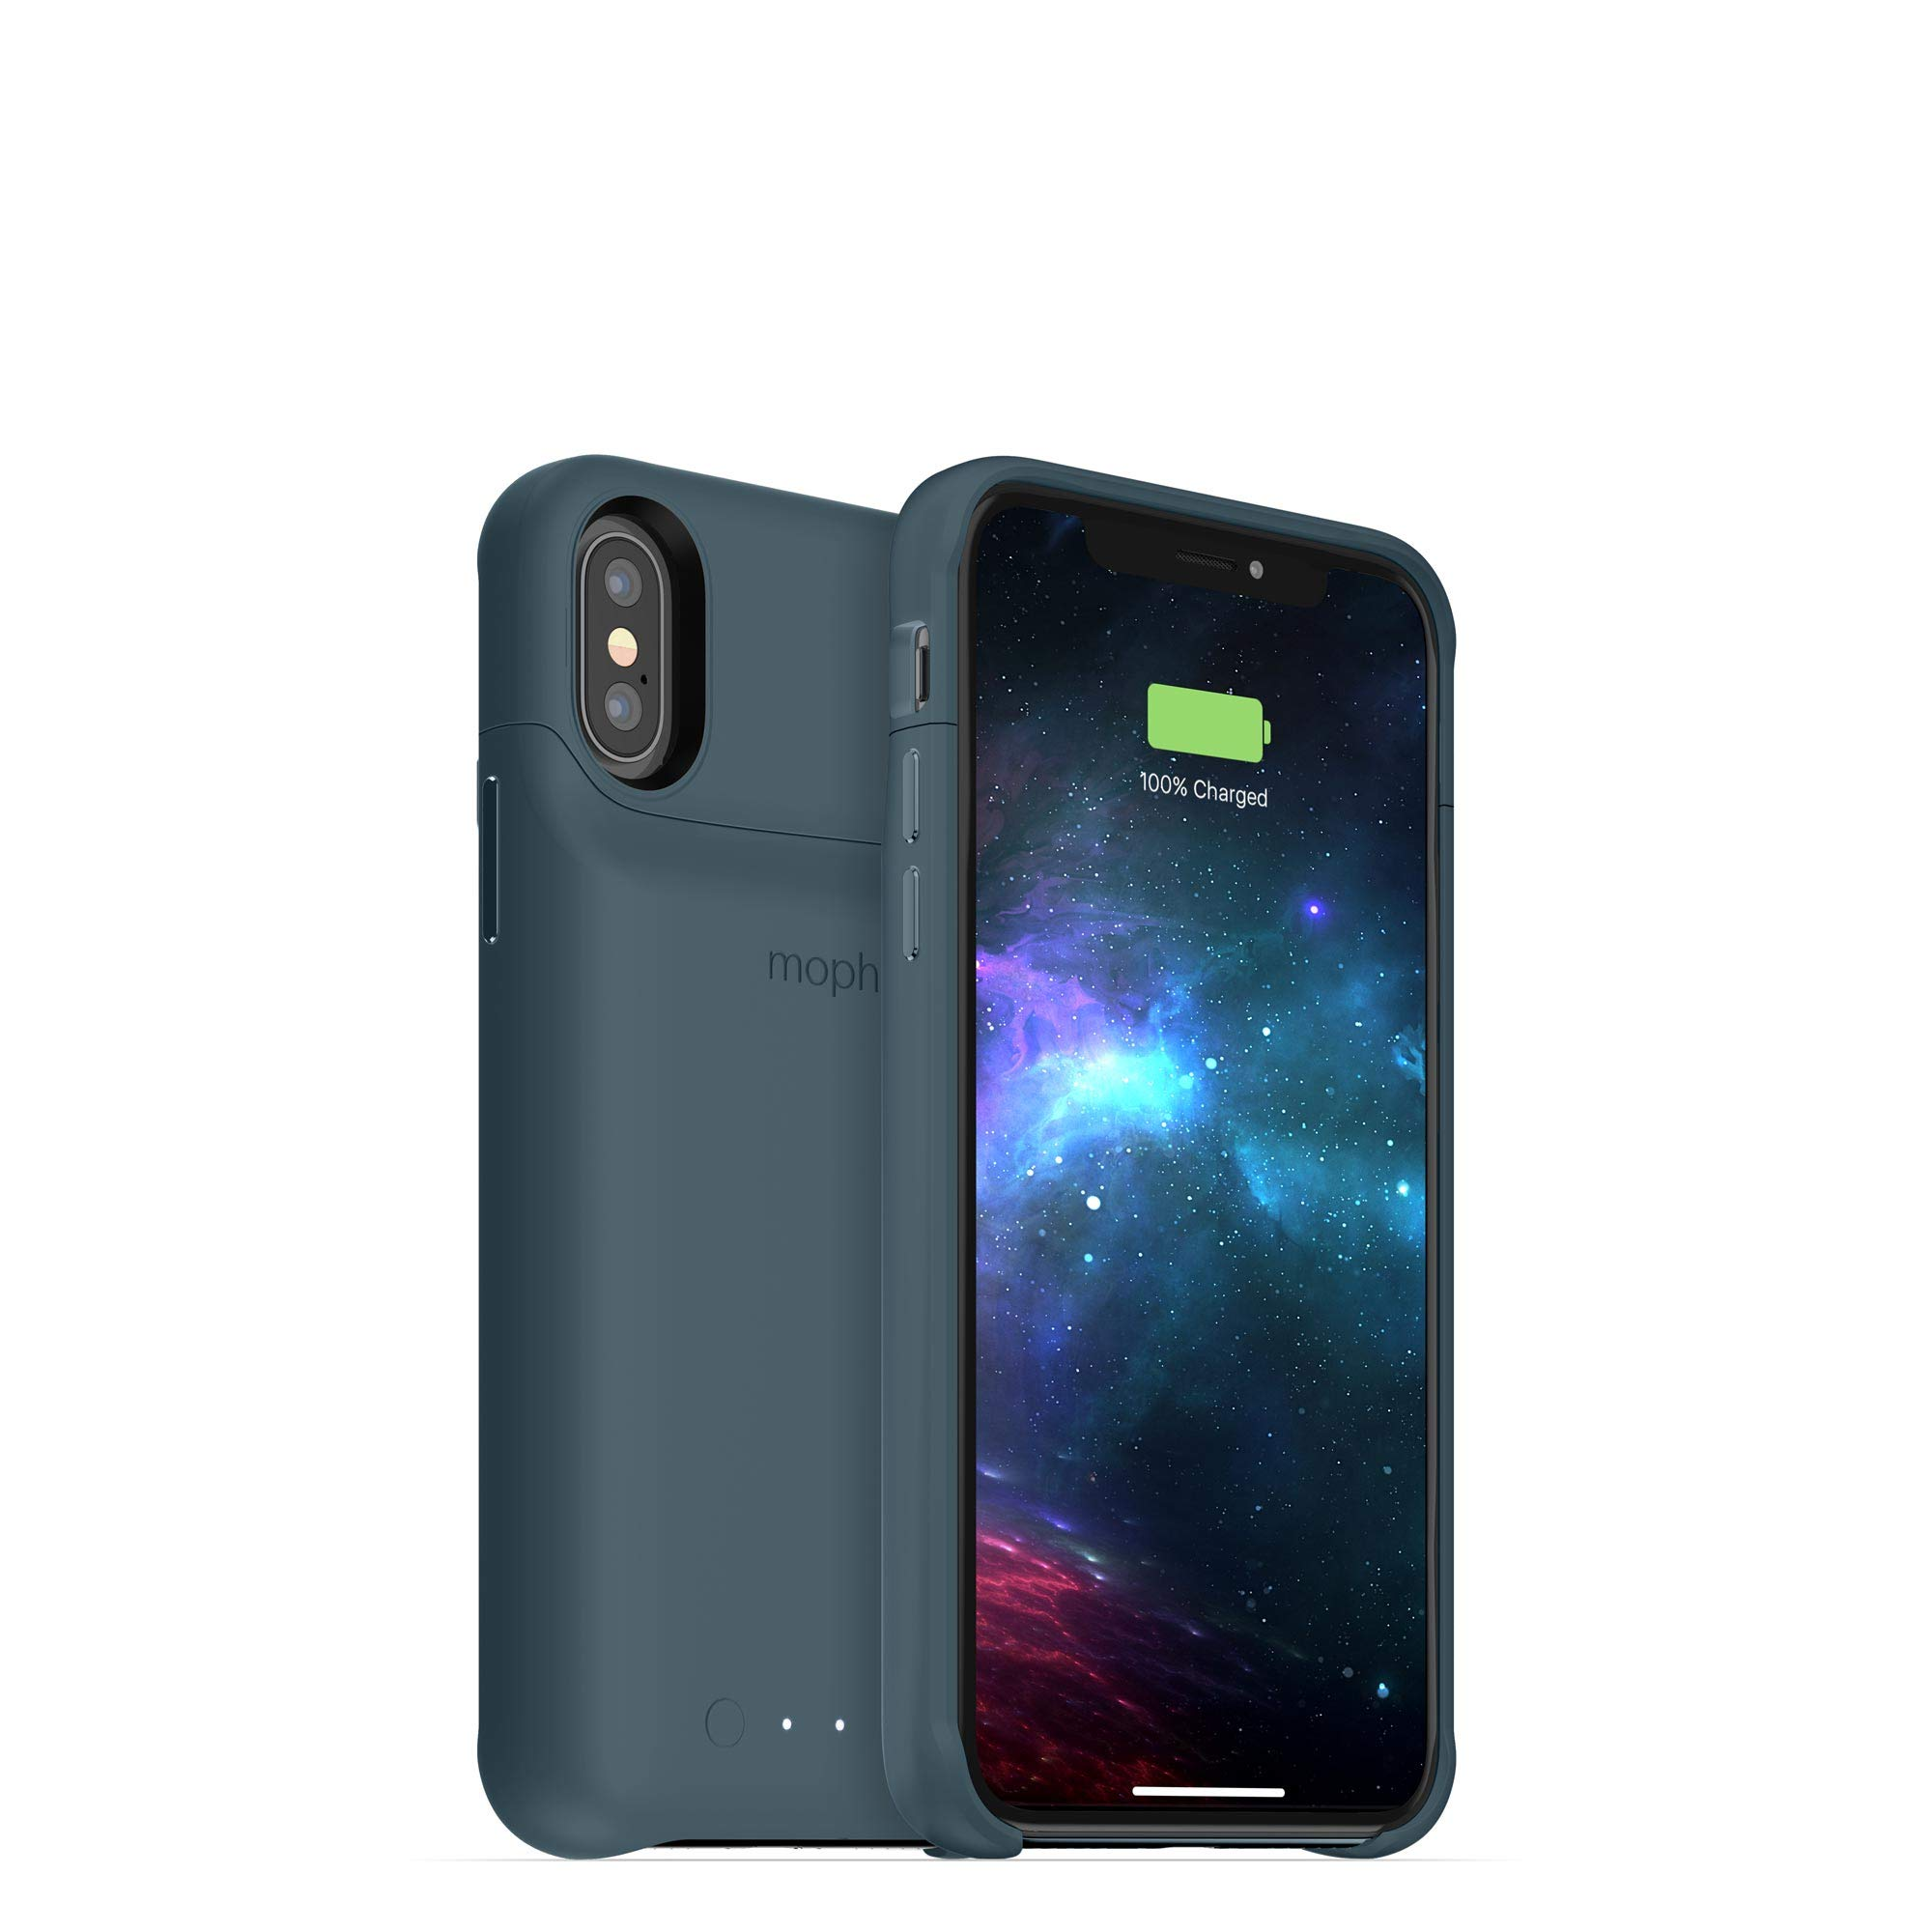 mophie Juice Pack Access Battery Case Made for Apple iPhone Xs/X (2,200mAh) - Stone